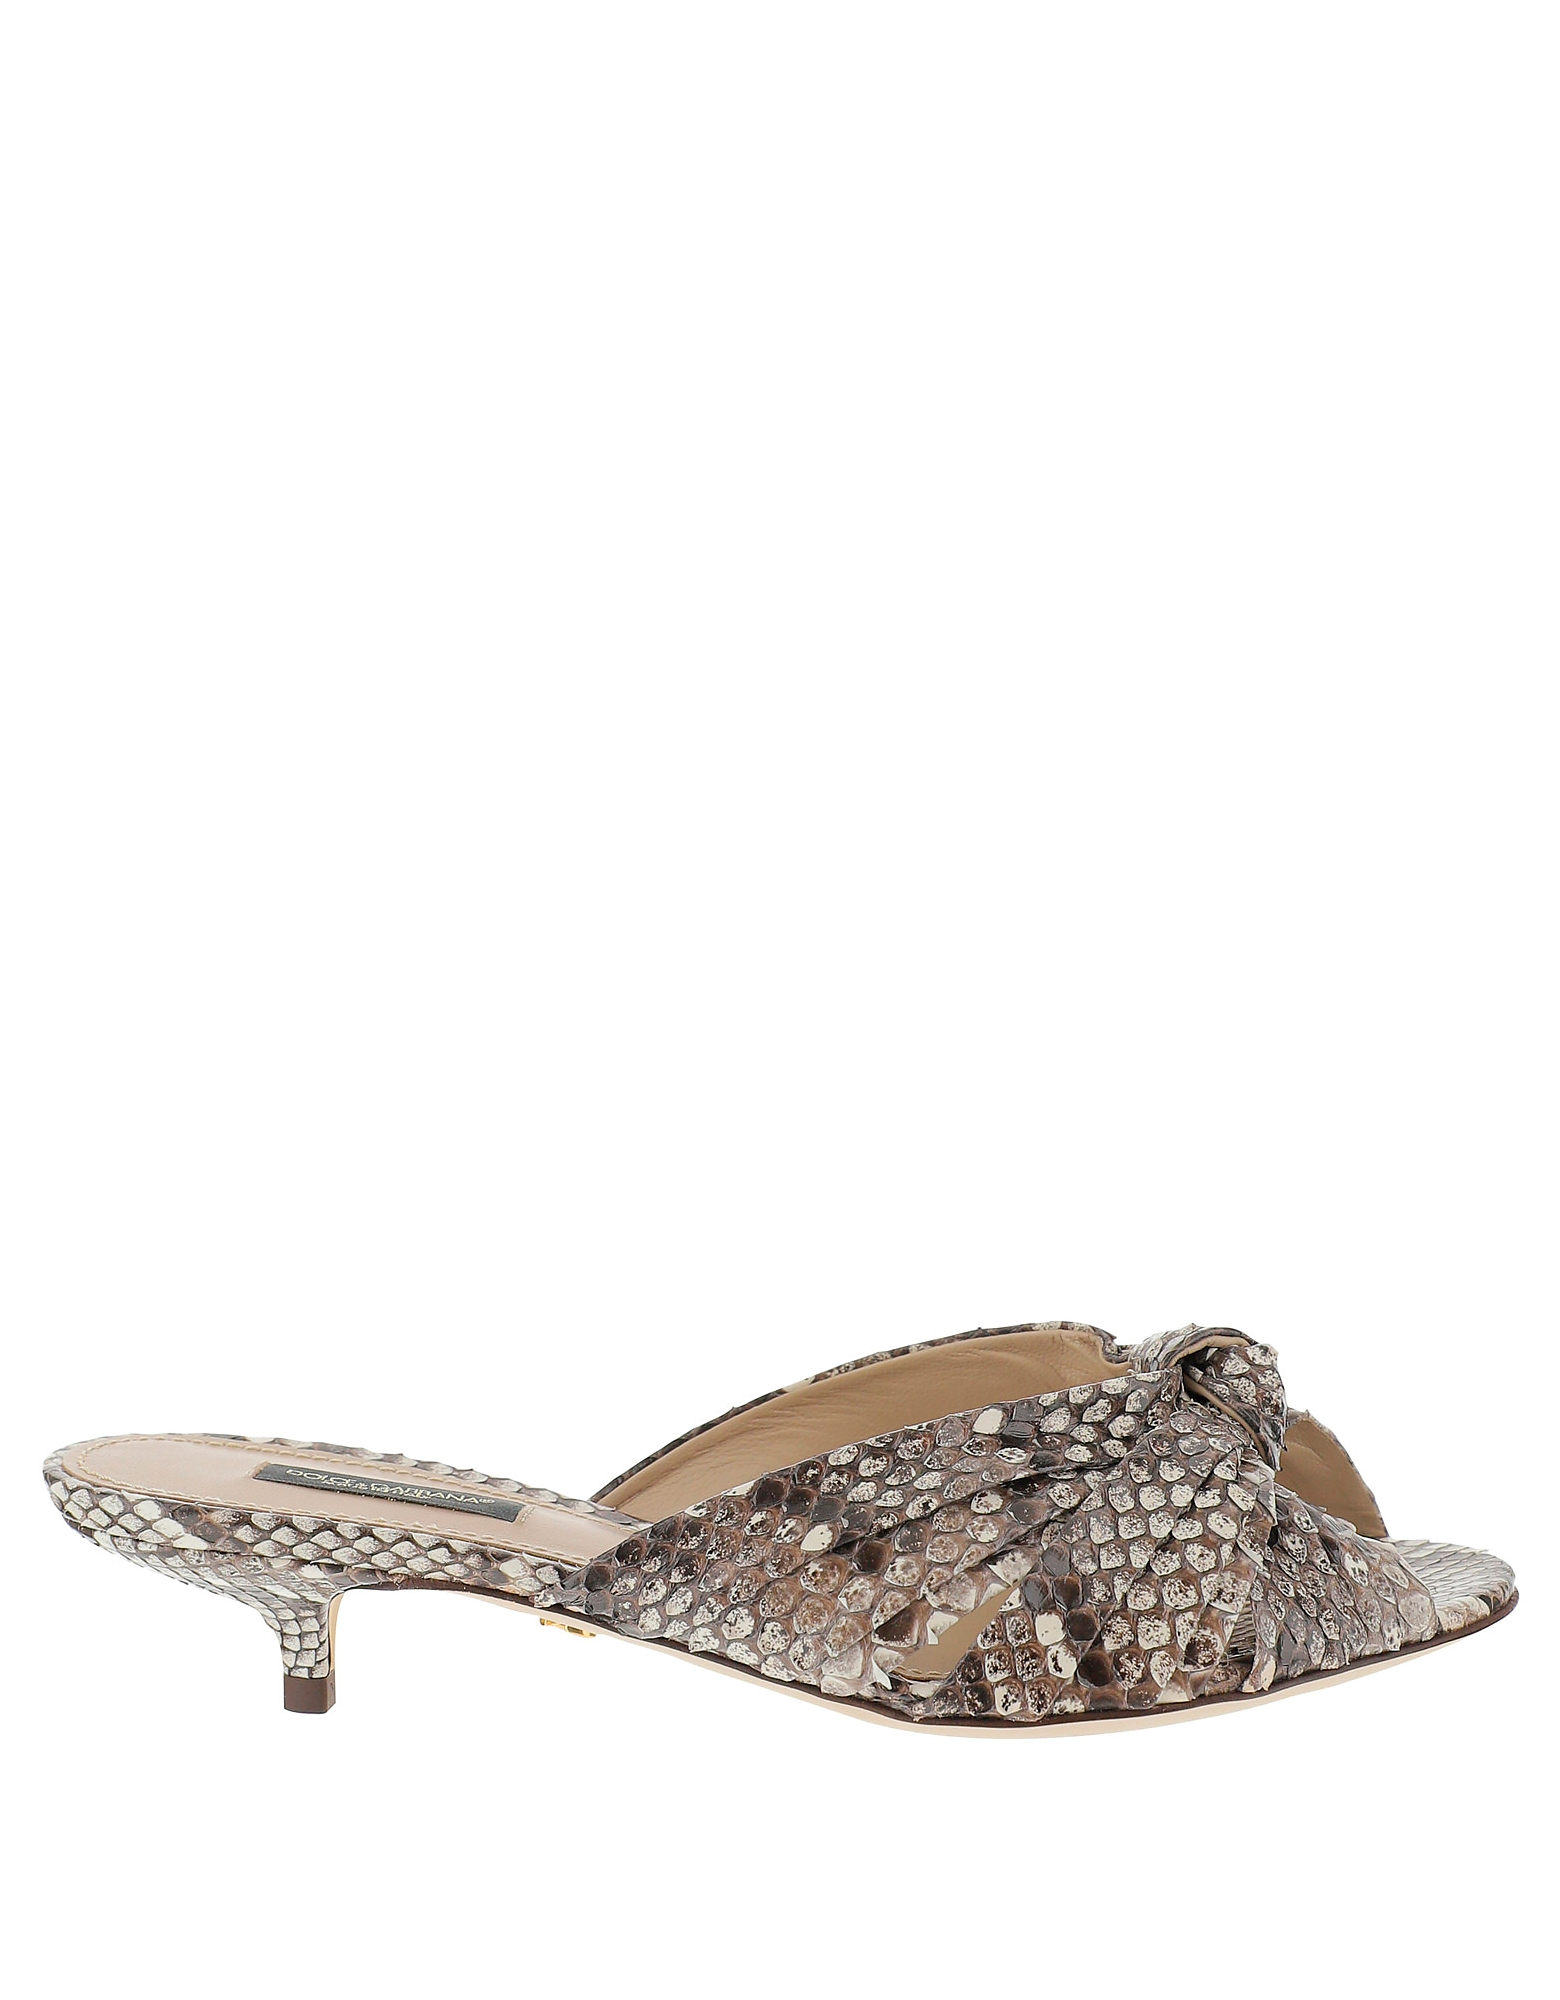 Dolce & Gabbana Designer Shoes, Python Printed Leather Mid Heel Slide Sandals